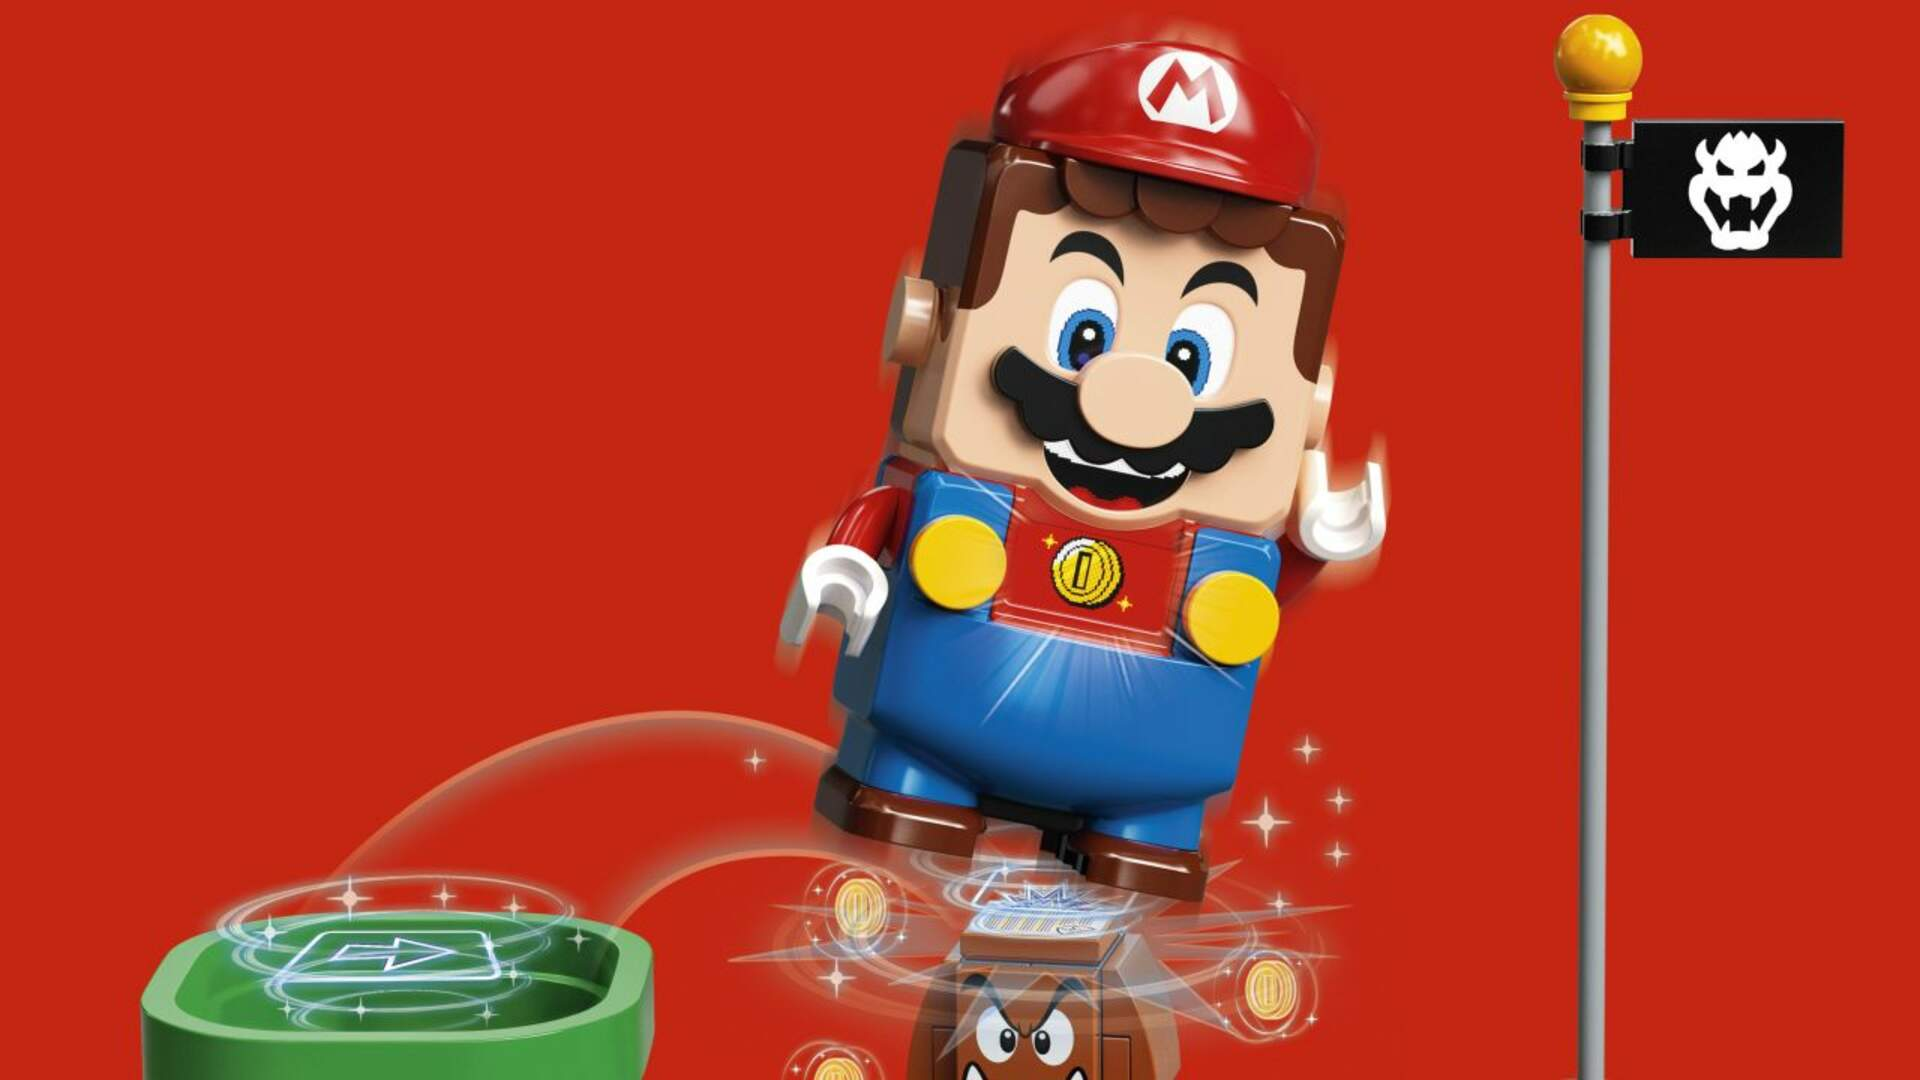 Lego Super Mario Brings the Plumber to Life With Lego Bricks